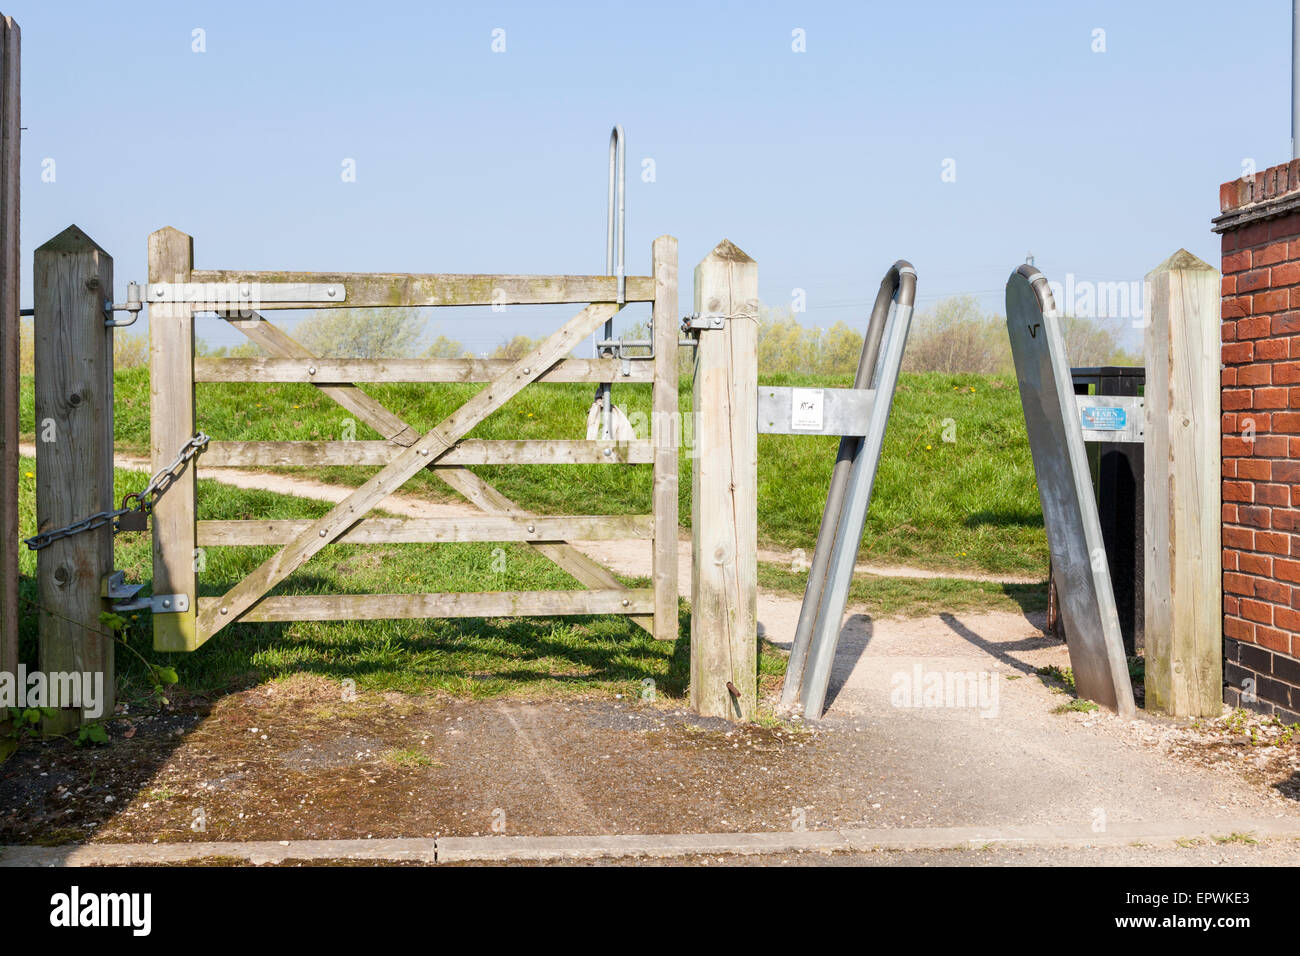 Frame Barrier Stock Photos & Frame Barrier Stock Images - Alamy